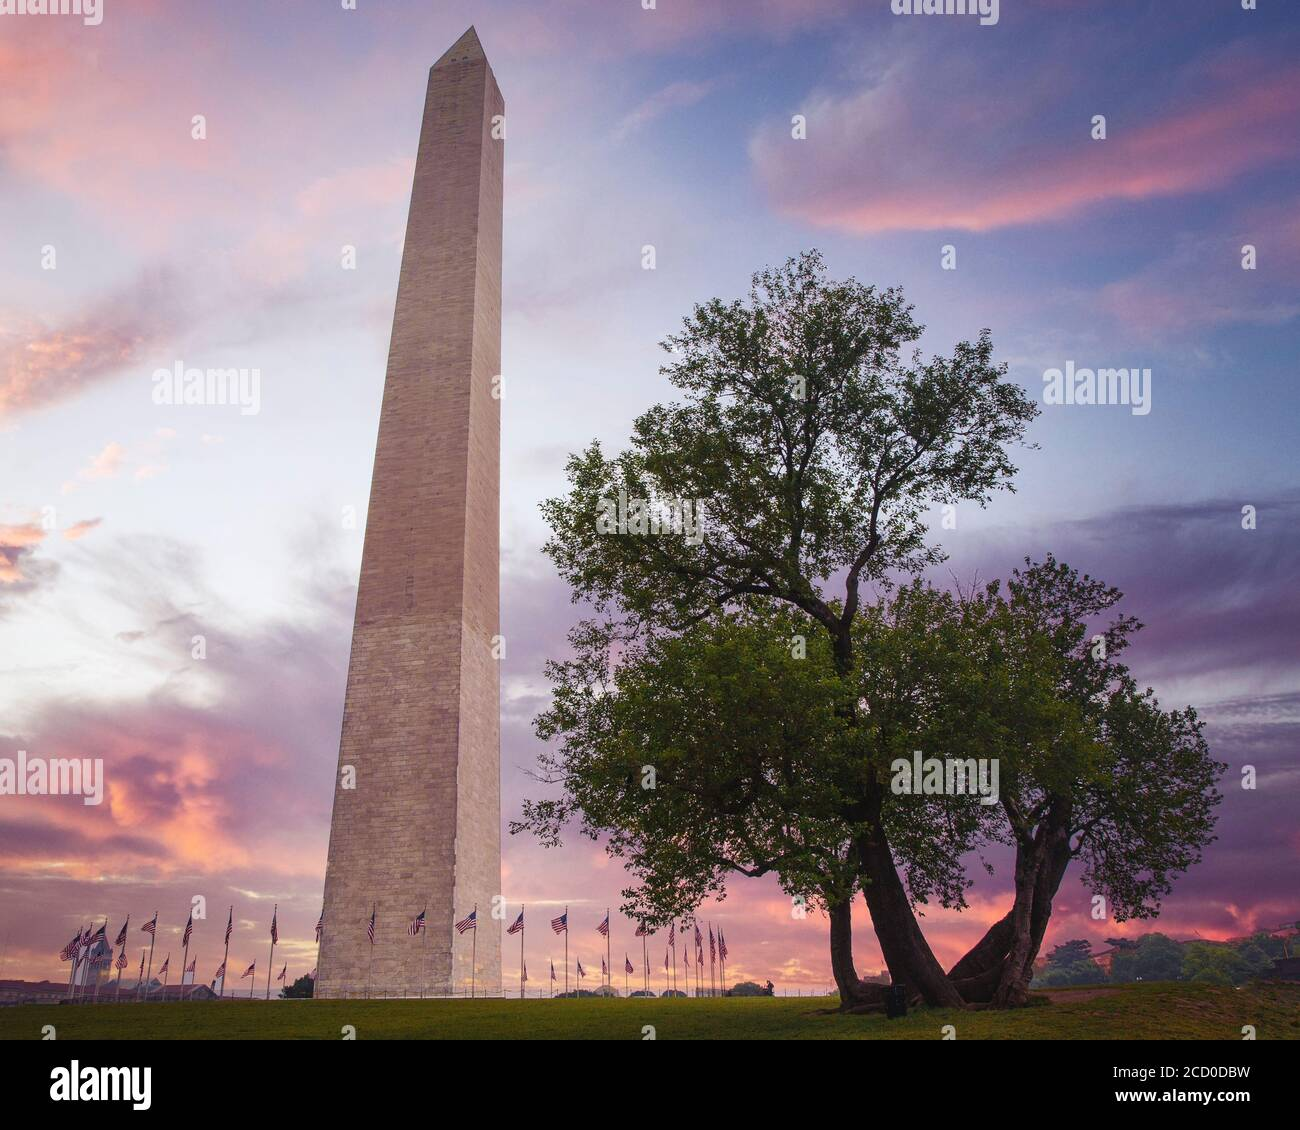 Das Washington Monument auf der National Mall in Washington DC. Stockfoto